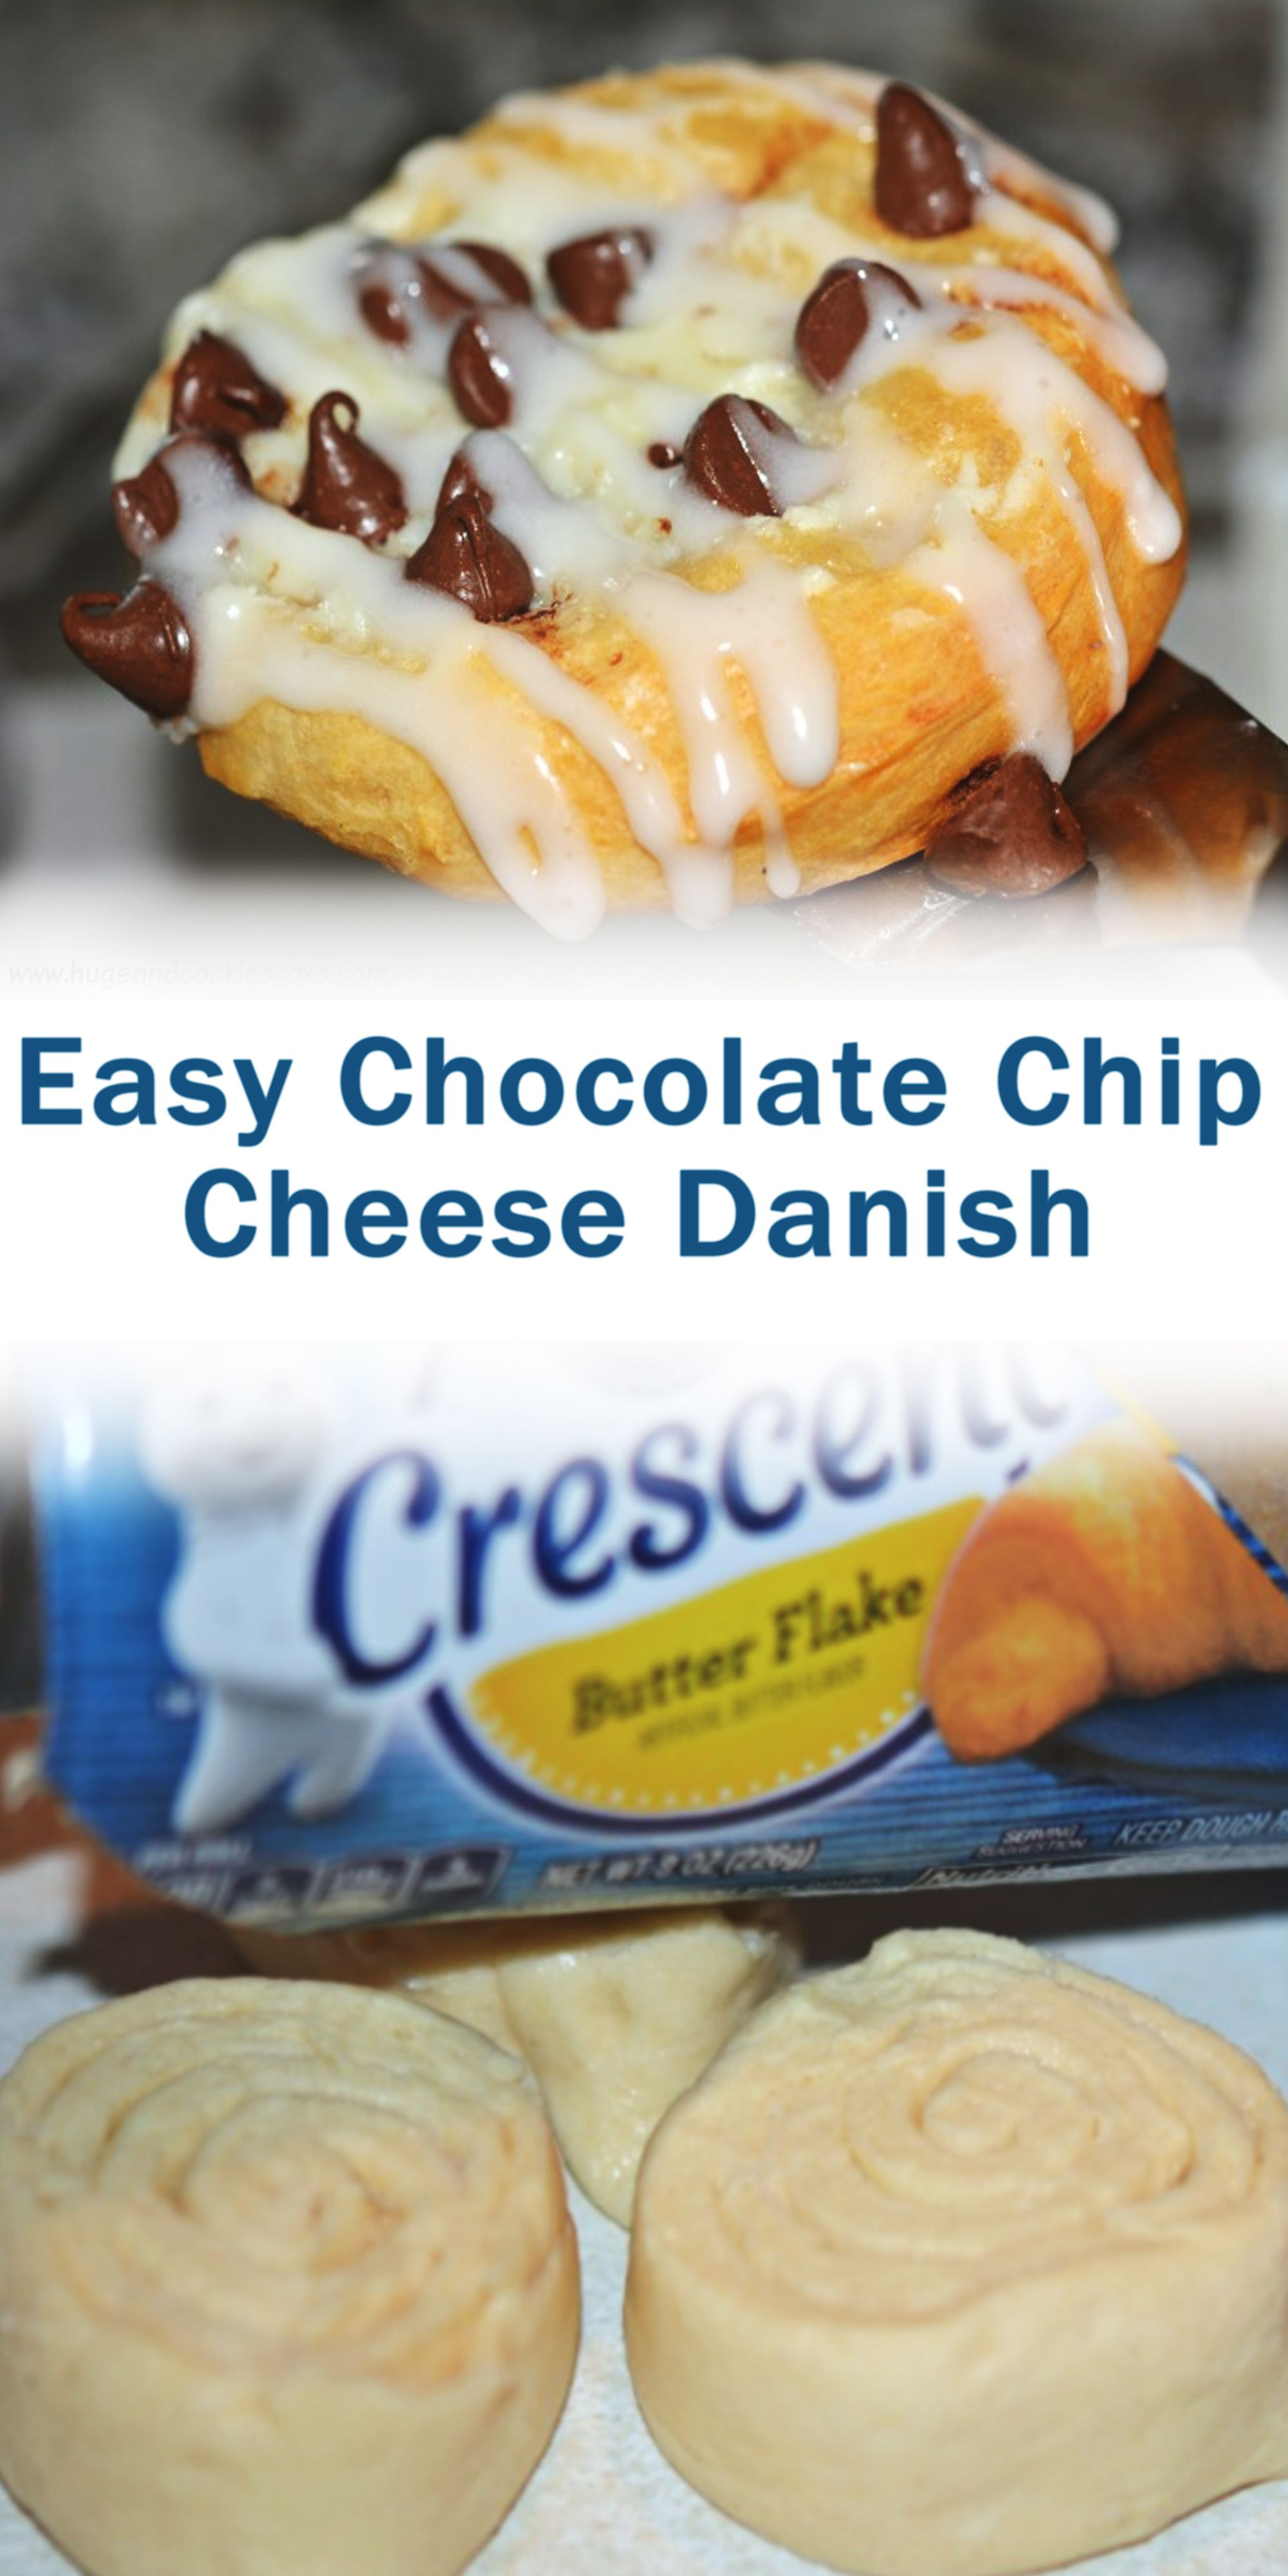 Easy Chocolate Chip Cheese Danish In 2020 Baked Dessert Recipes Dessert Recipes Best Dessert Recipes